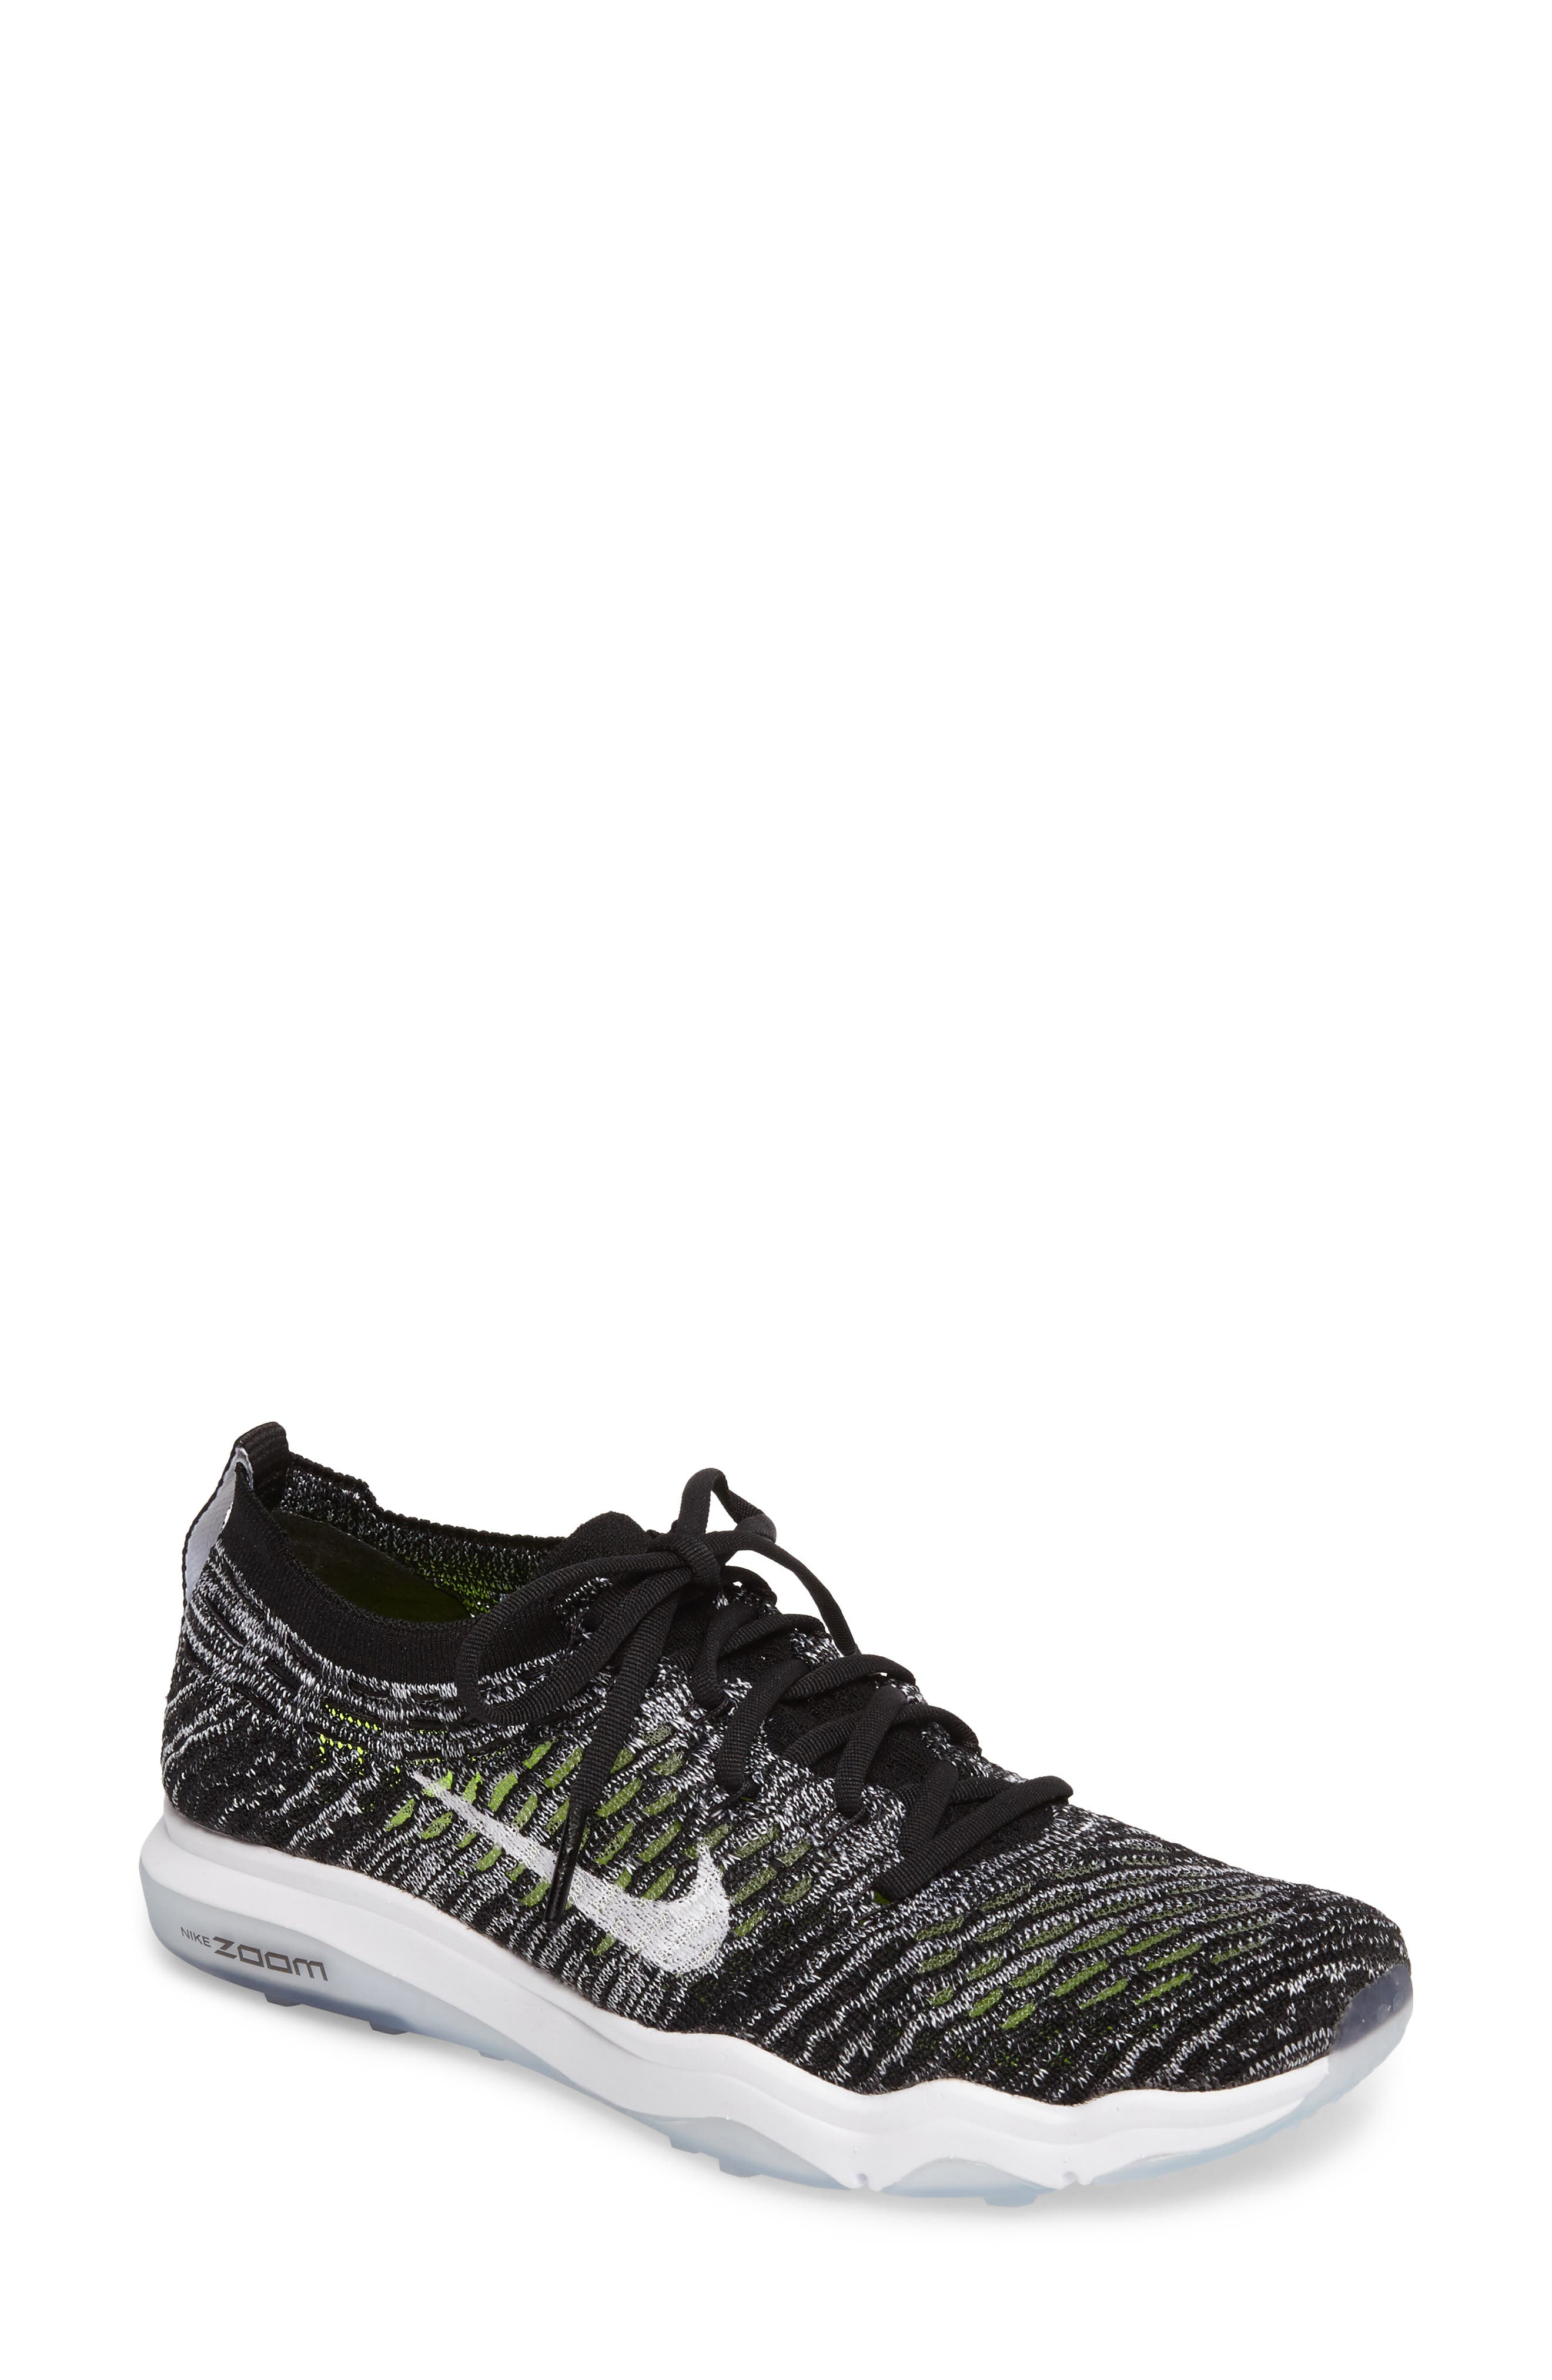 Air Zoom Fearless Flyknit Training Shoe,                             Main thumbnail 1, color,                             Black/ White/ White